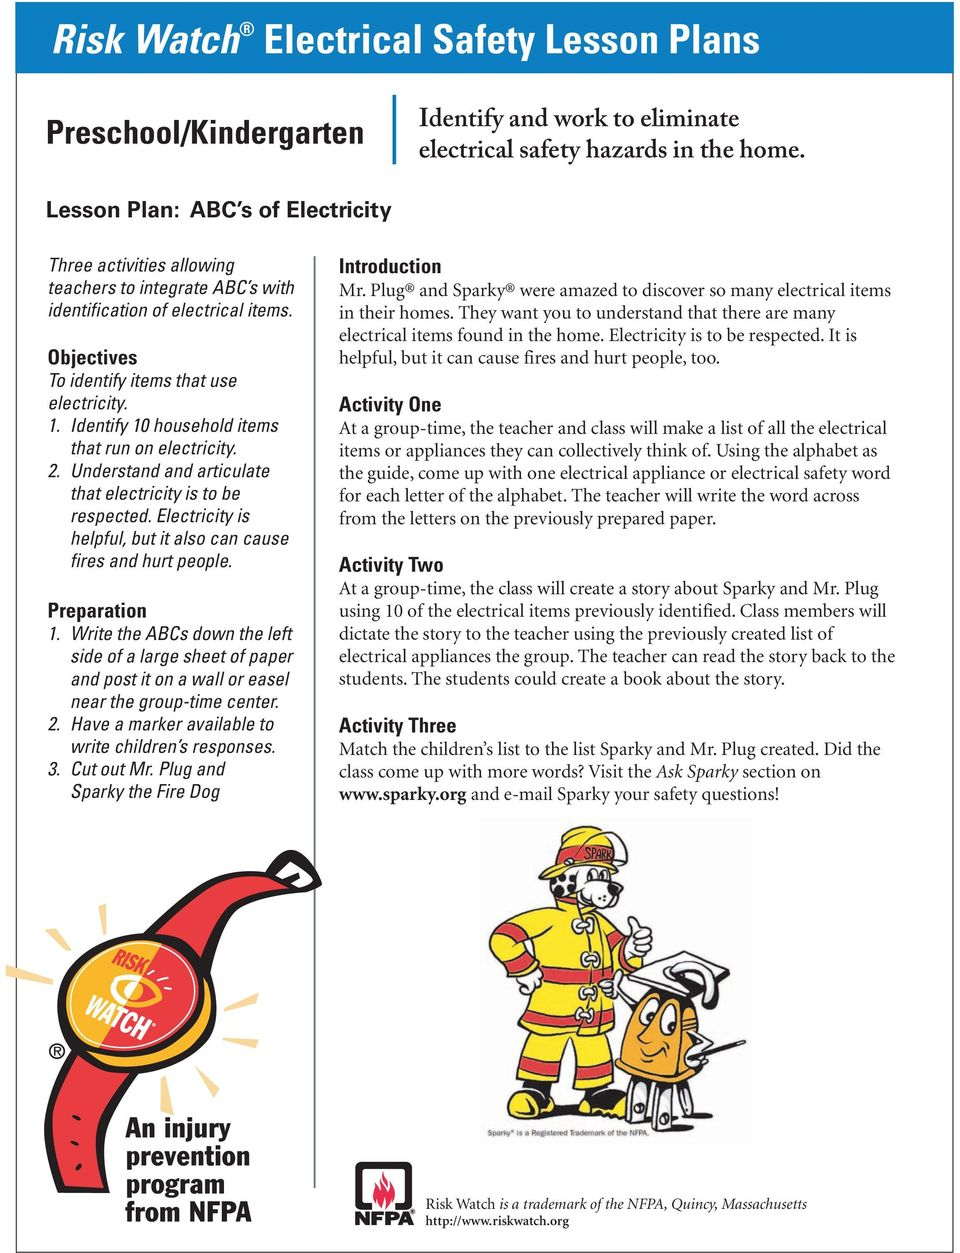 Risk Watch Electrical Safety Lesson Plans - PDF